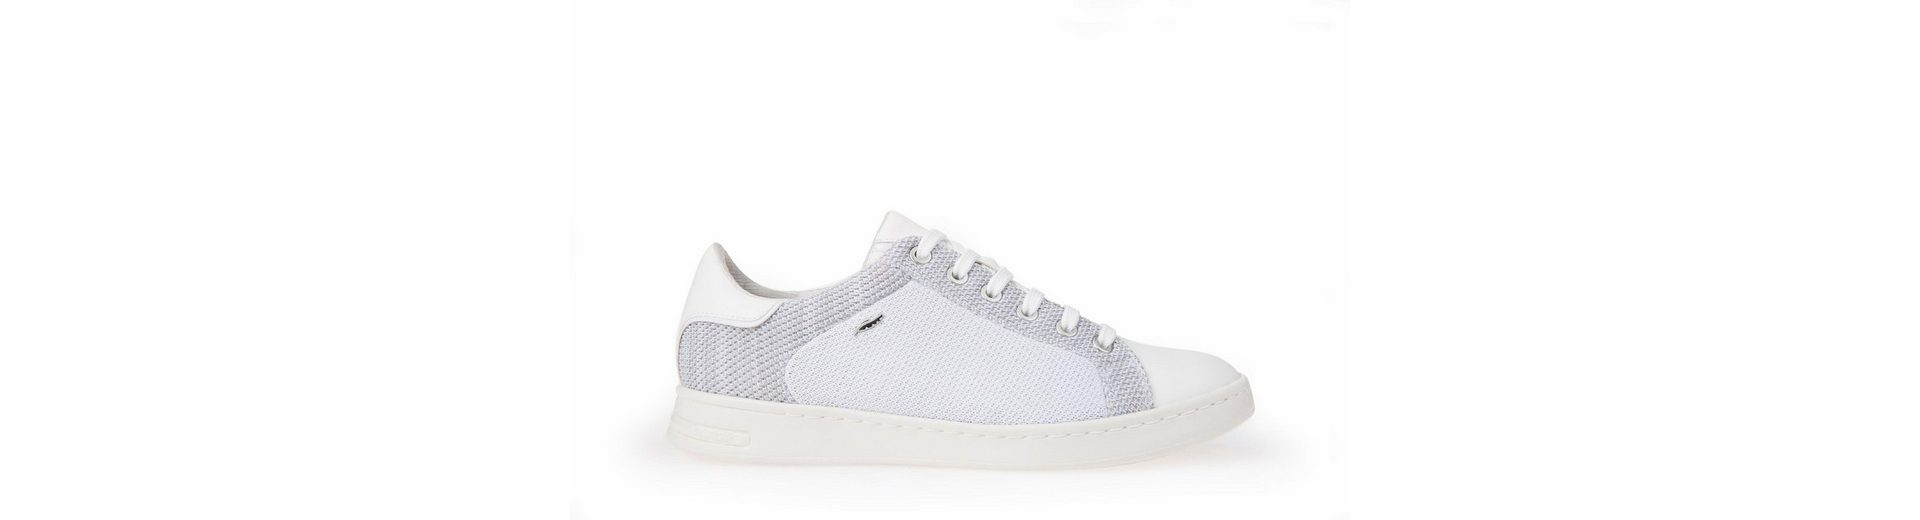 Geox D Jaysen Sneaker, in Strick-Optik